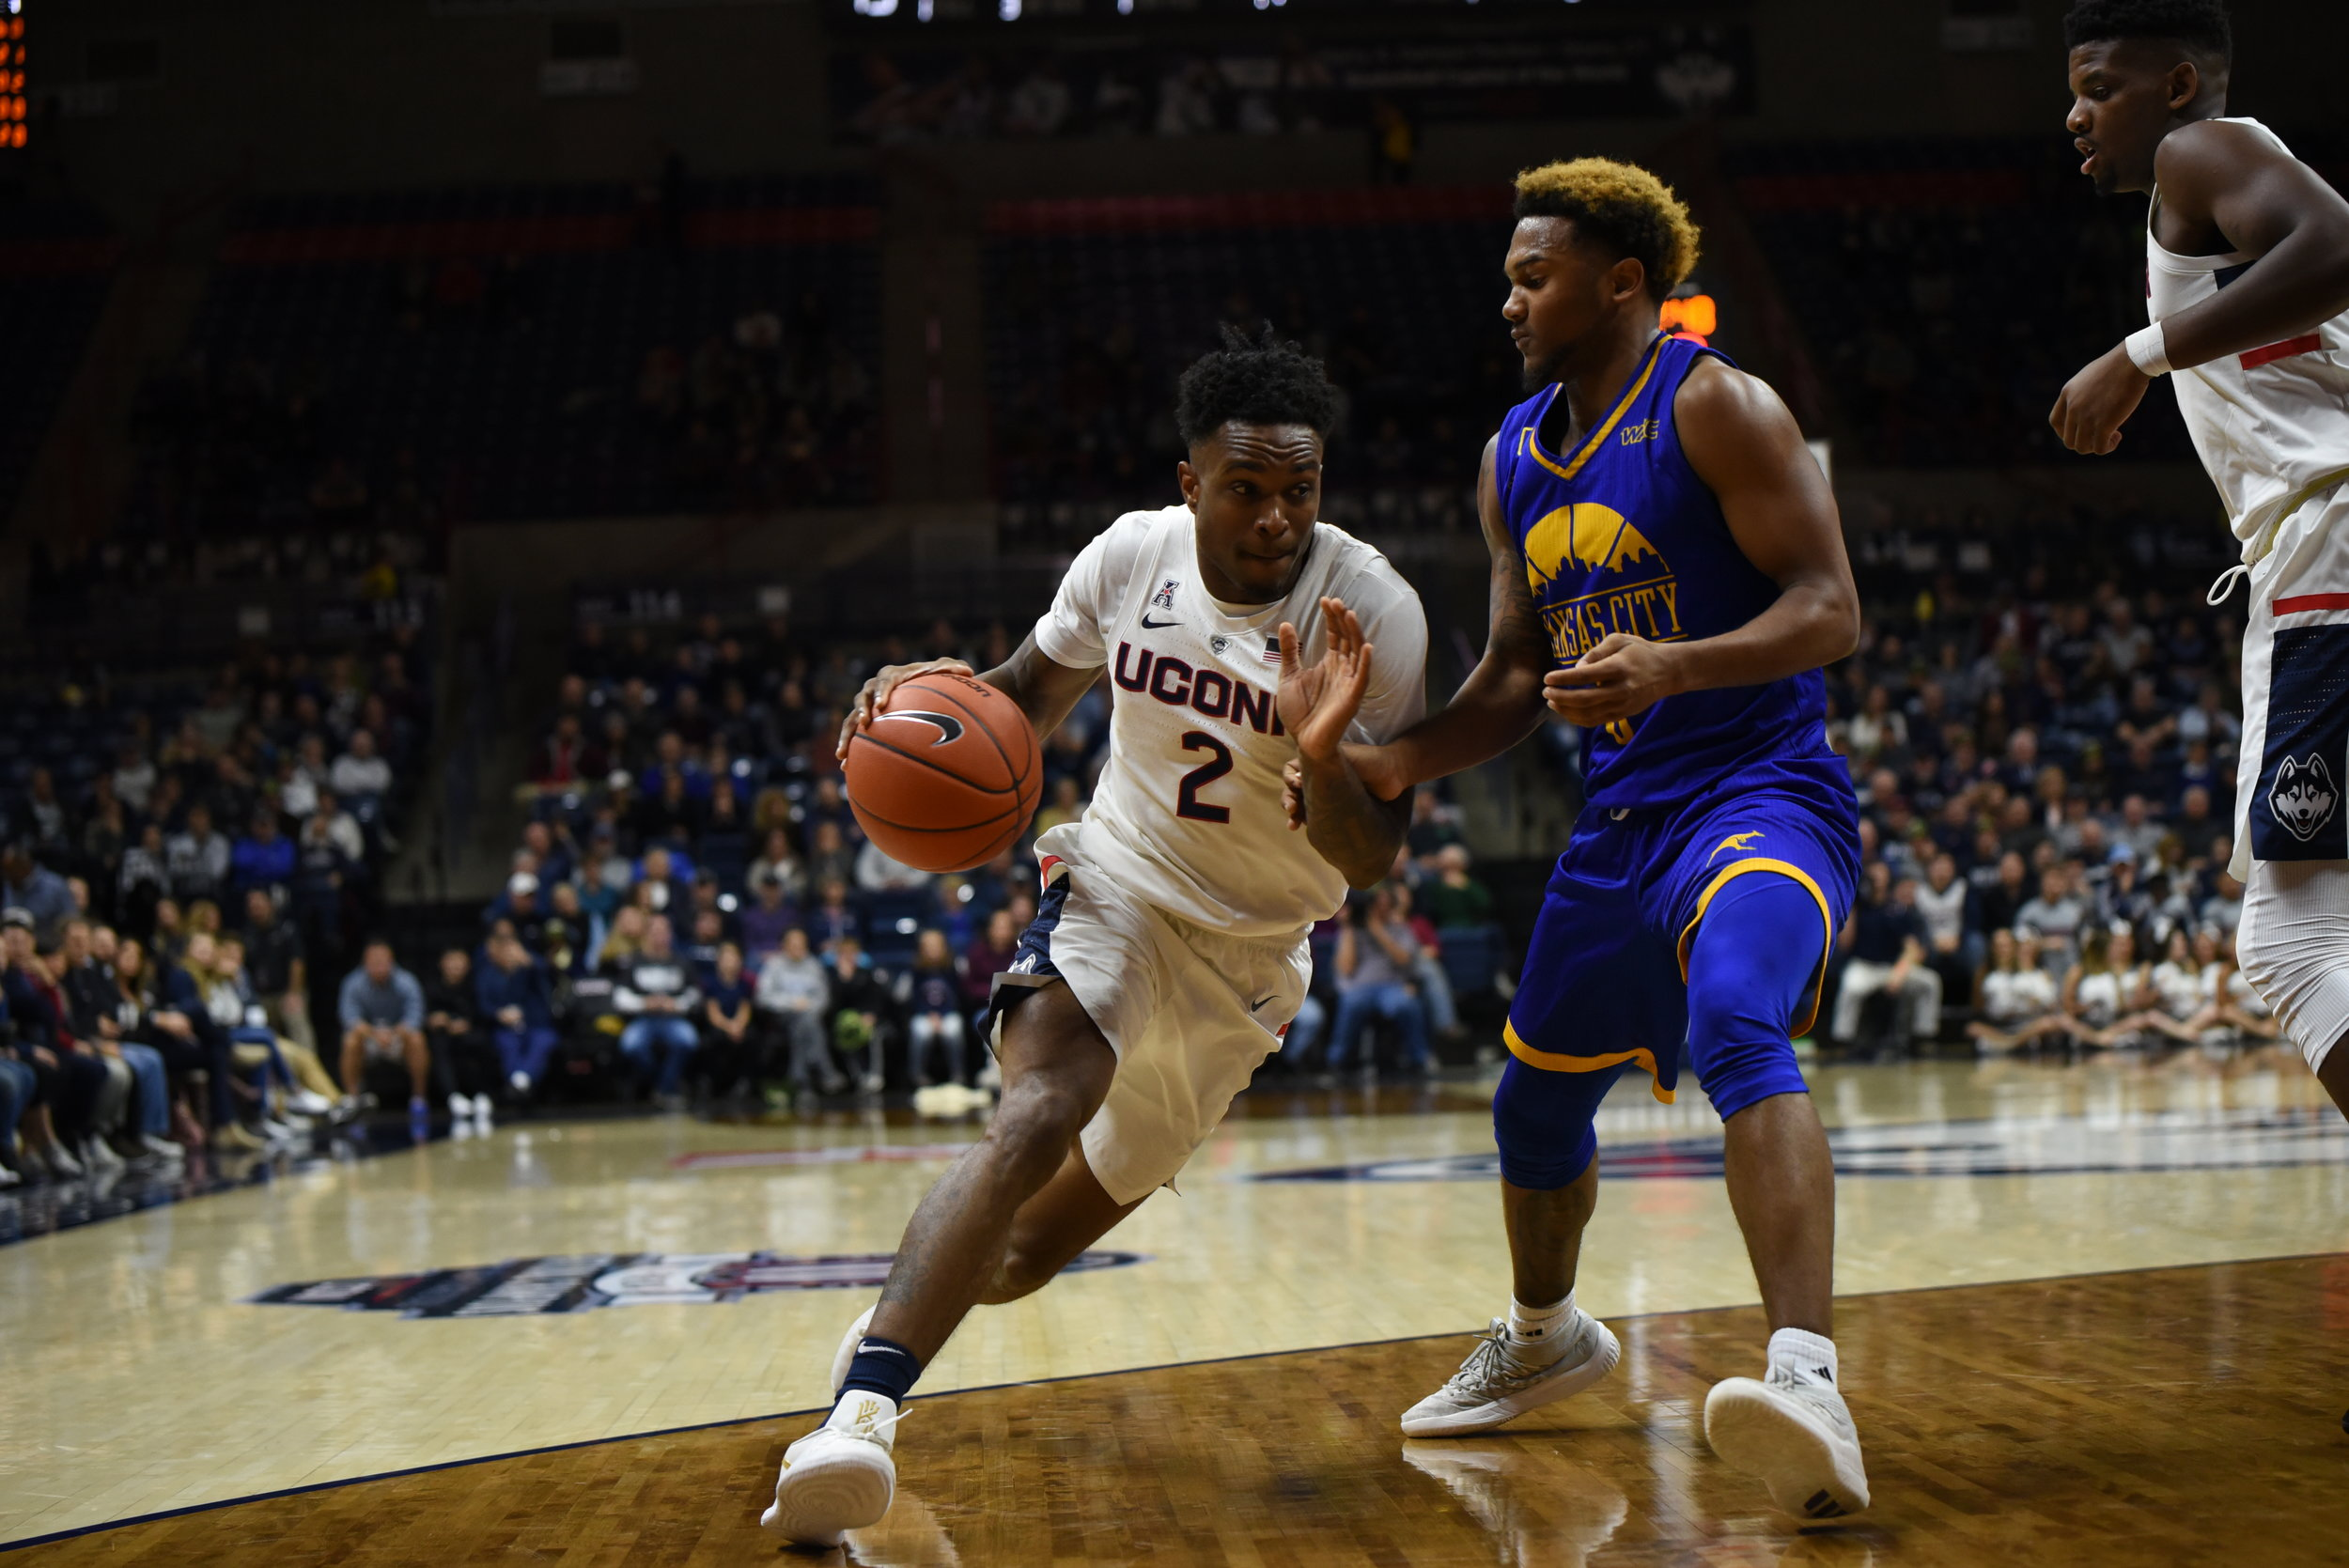 Tarin Smith pushes past a UMKC defender during a game on Nov. 11, 2018. (Nicholas Hampton/ The Daily Campus)